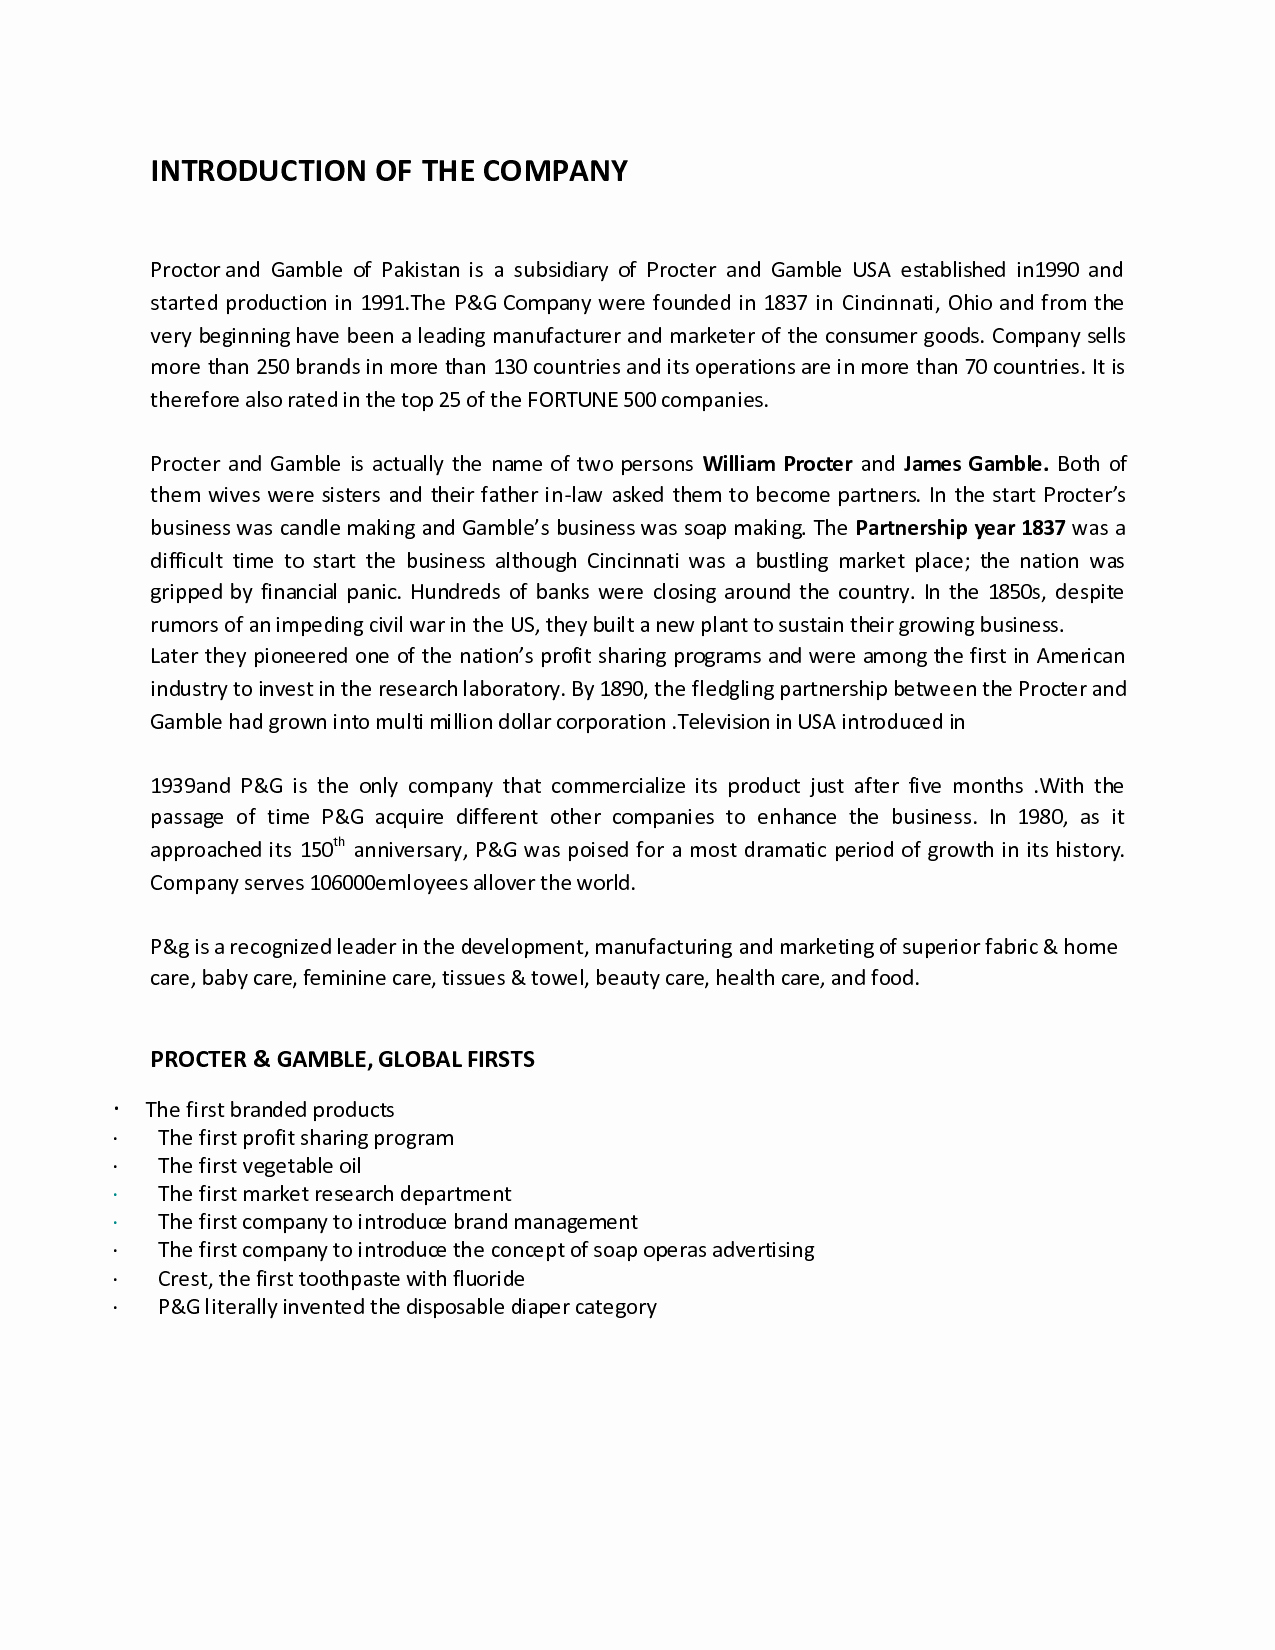 Company Cover Letter Template - Sample Cover Letter Resume Best Od Consultant Cover Letter